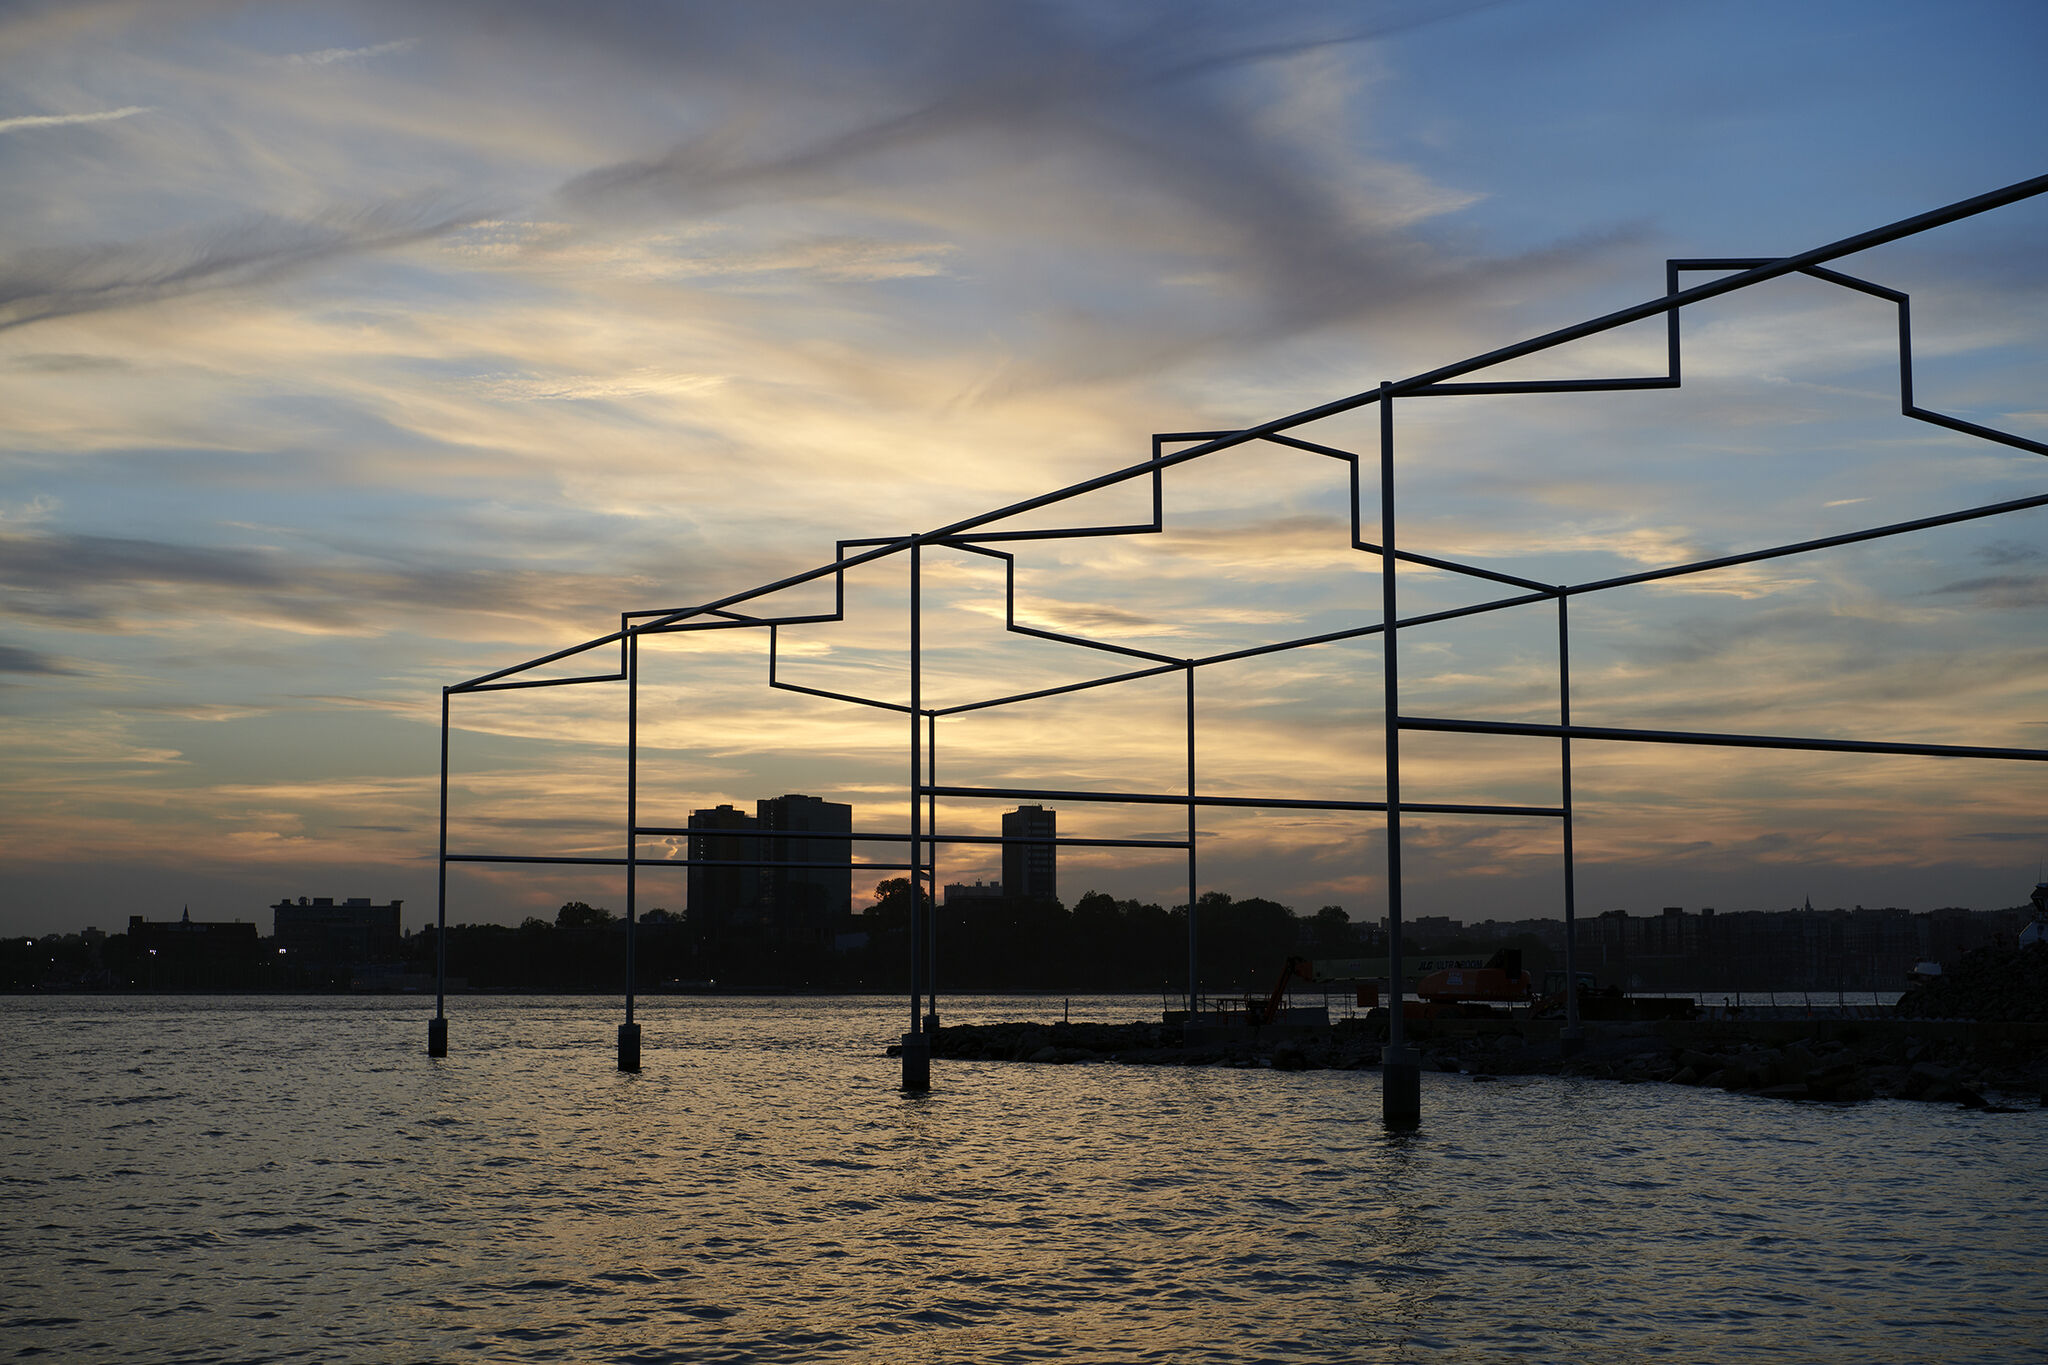 Day's End steel sculpture on the Hudson River, with sunset and New Jersey skyline in the background.